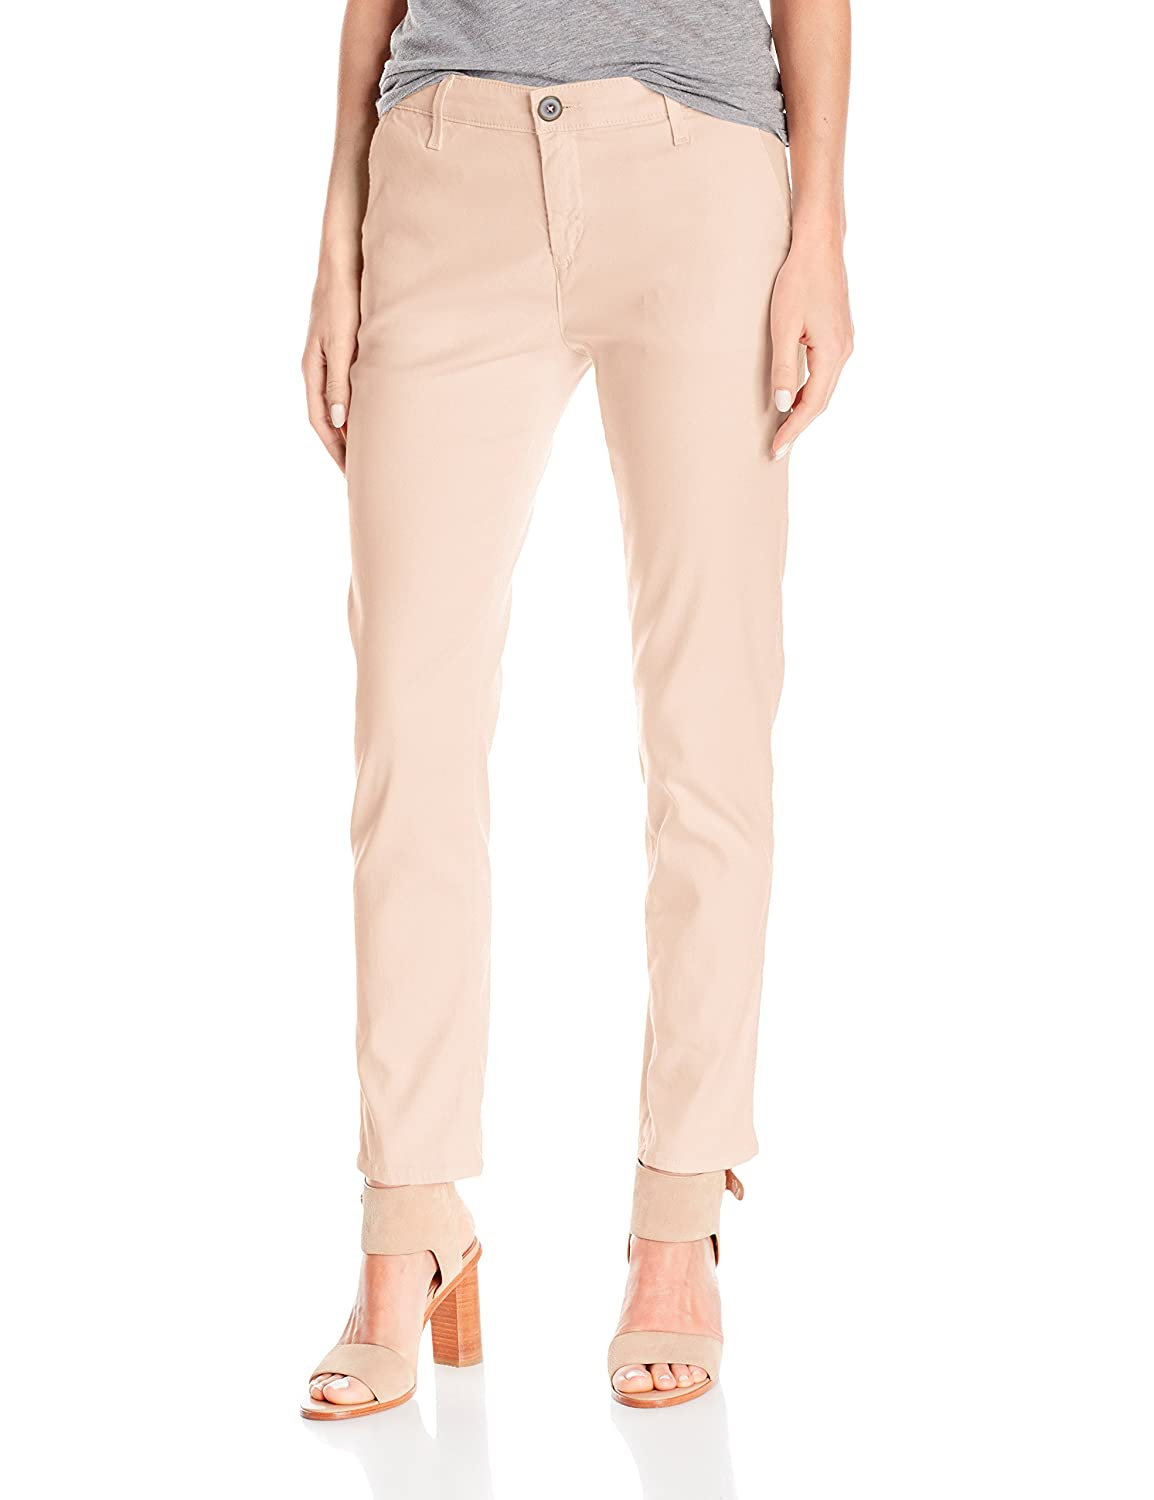 65024c4a07 AG Adriano Goldschmied Women's Caden Tailored Trouser